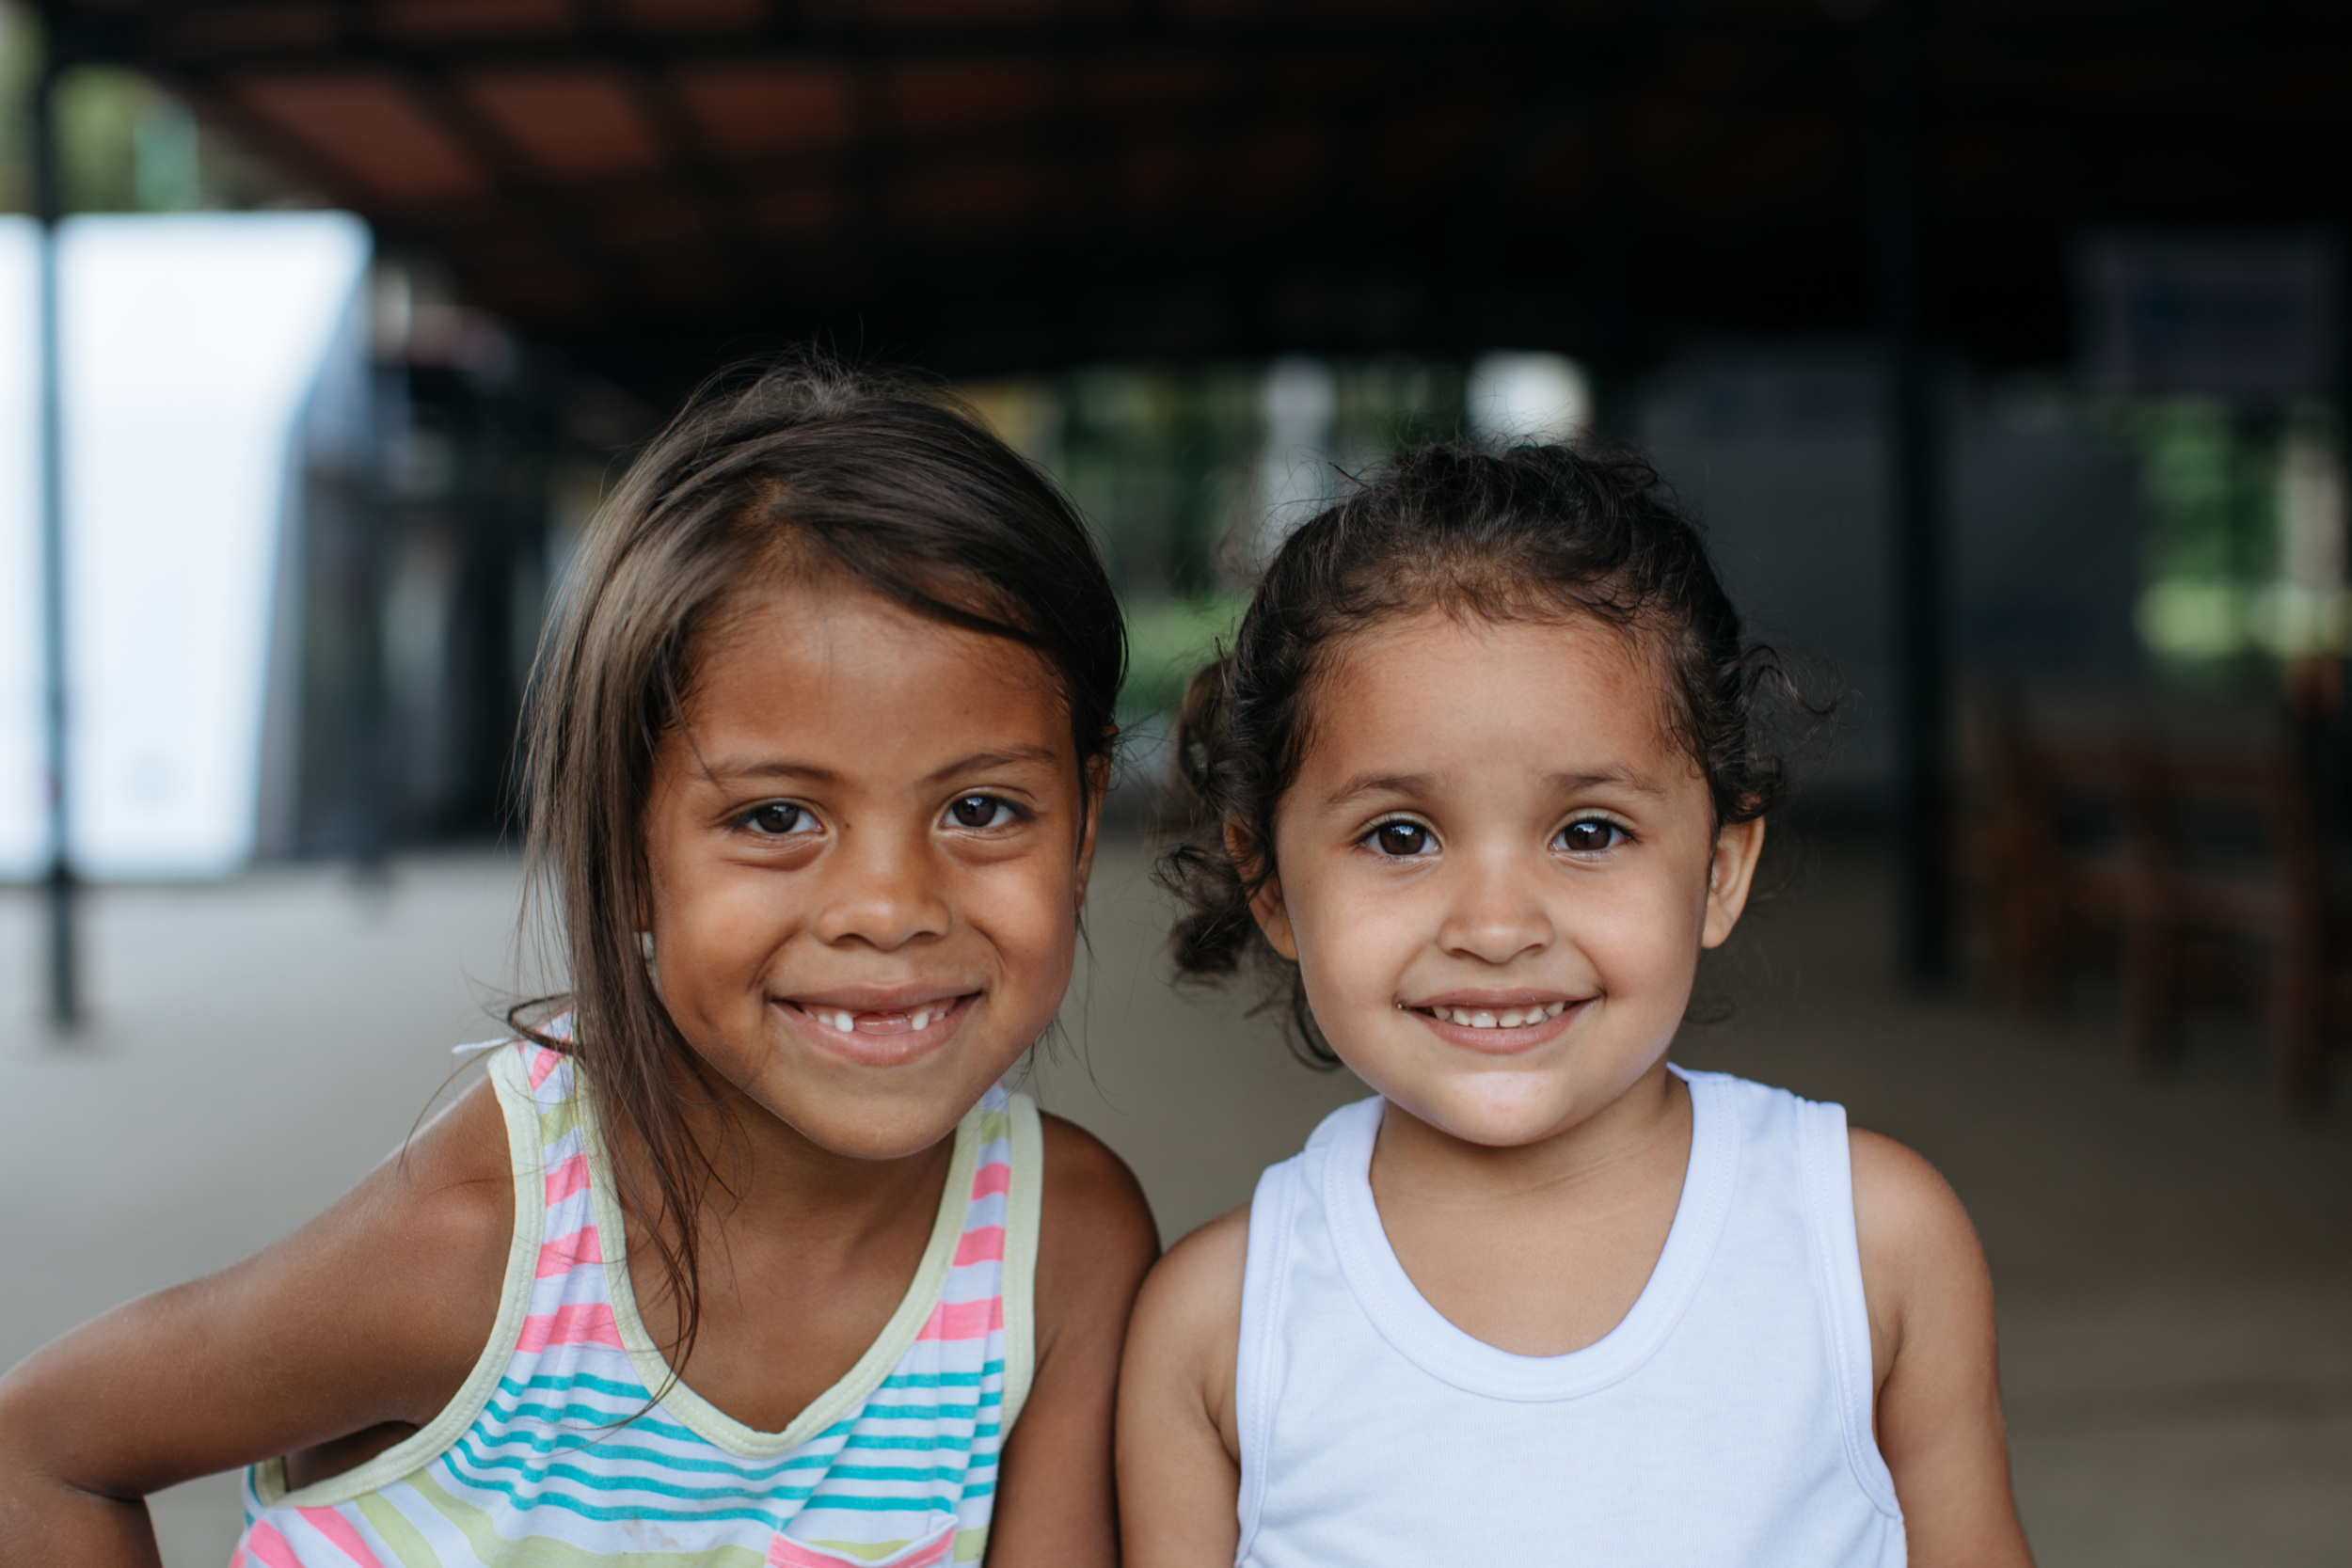 Salma, left, and Ariana, right, fled Venezuela with their family. Photo credit: Paddy Dowling